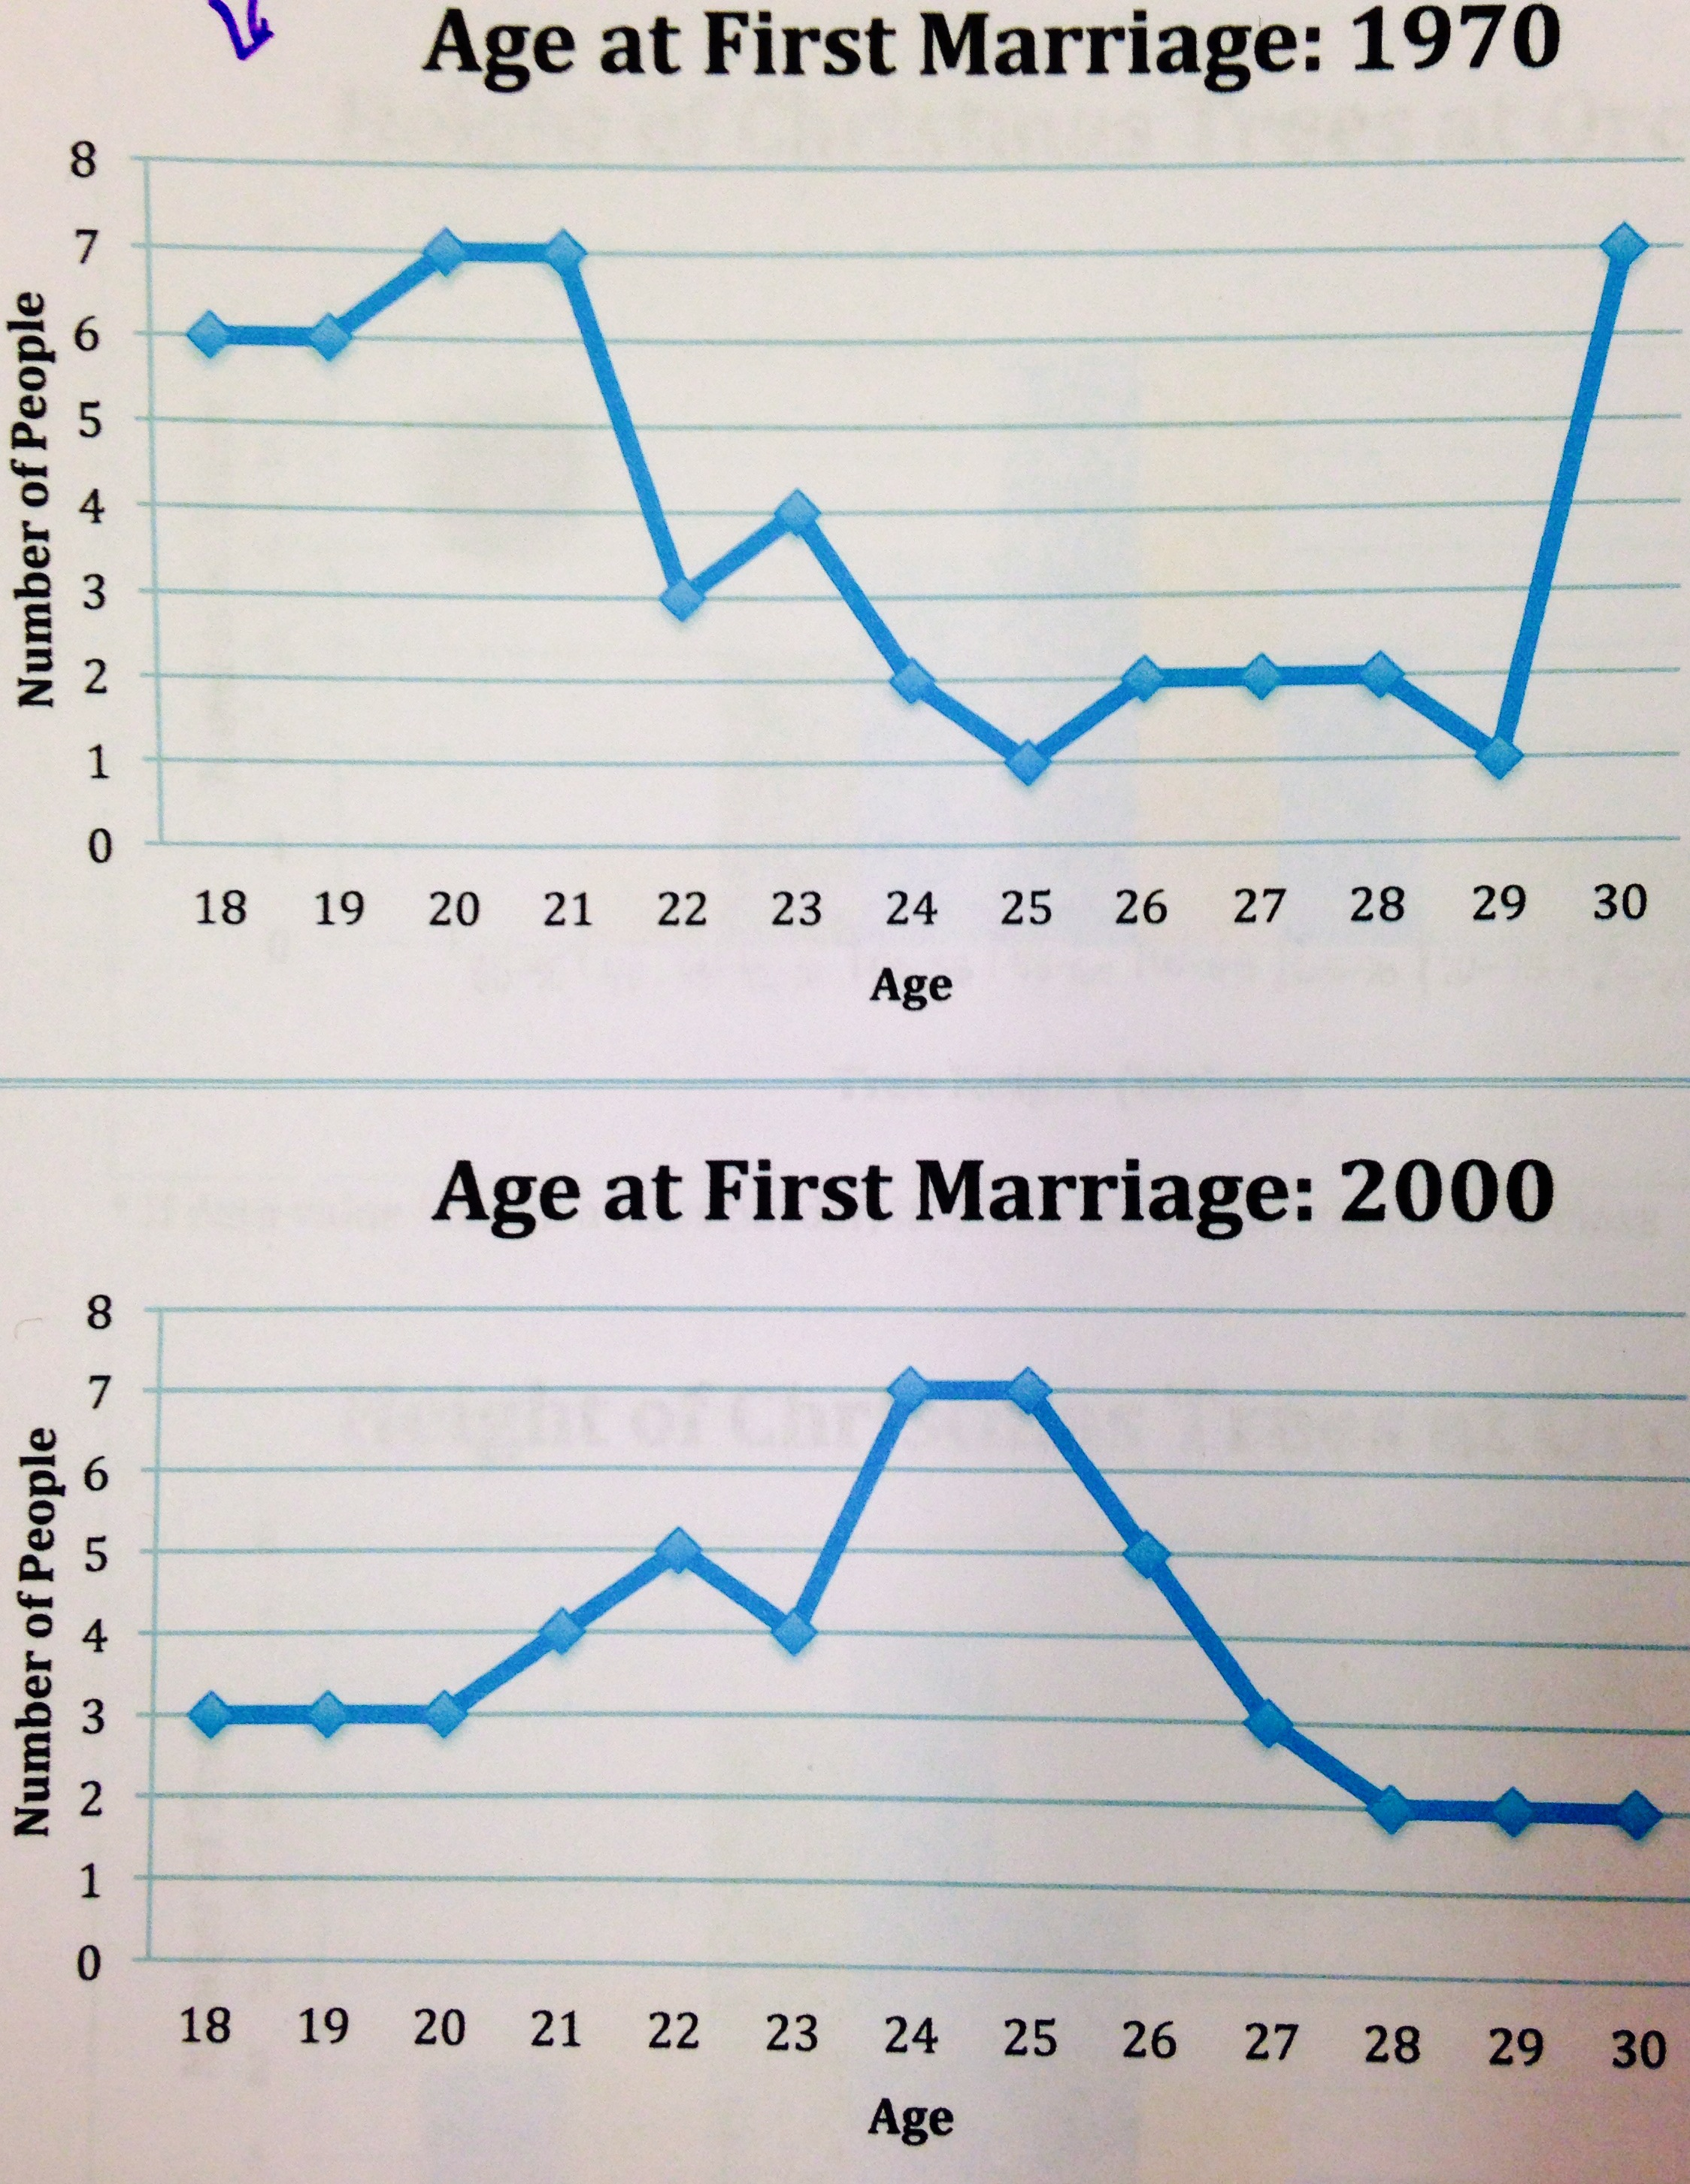 Sample images assignment 3 submissions this is a line graph not a dot plot pooptronica